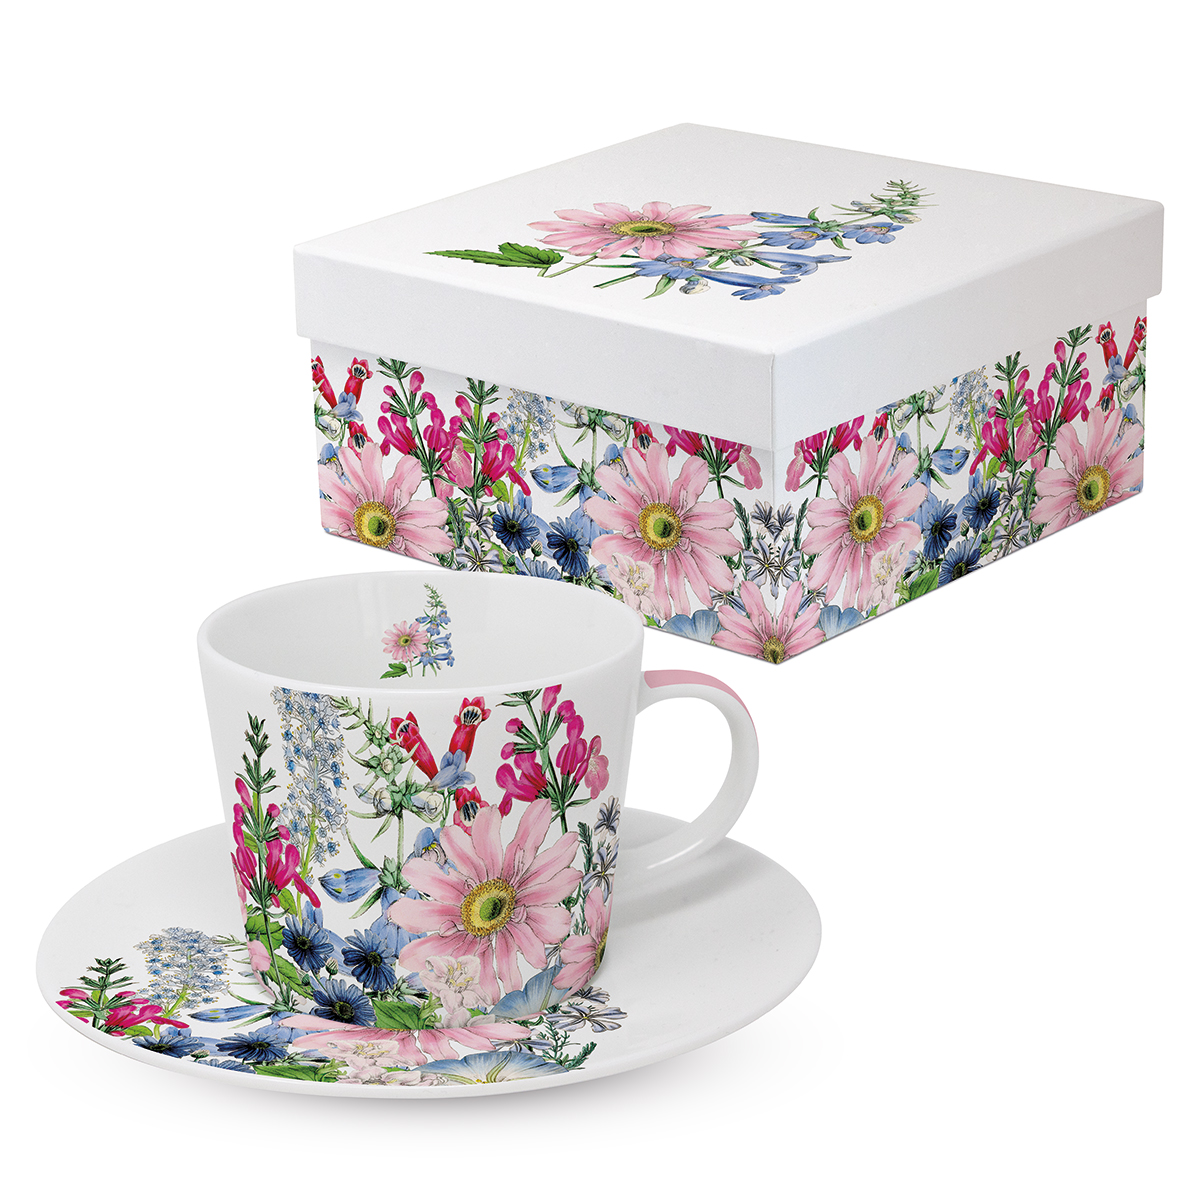 Trend Coffee GB Floriculture